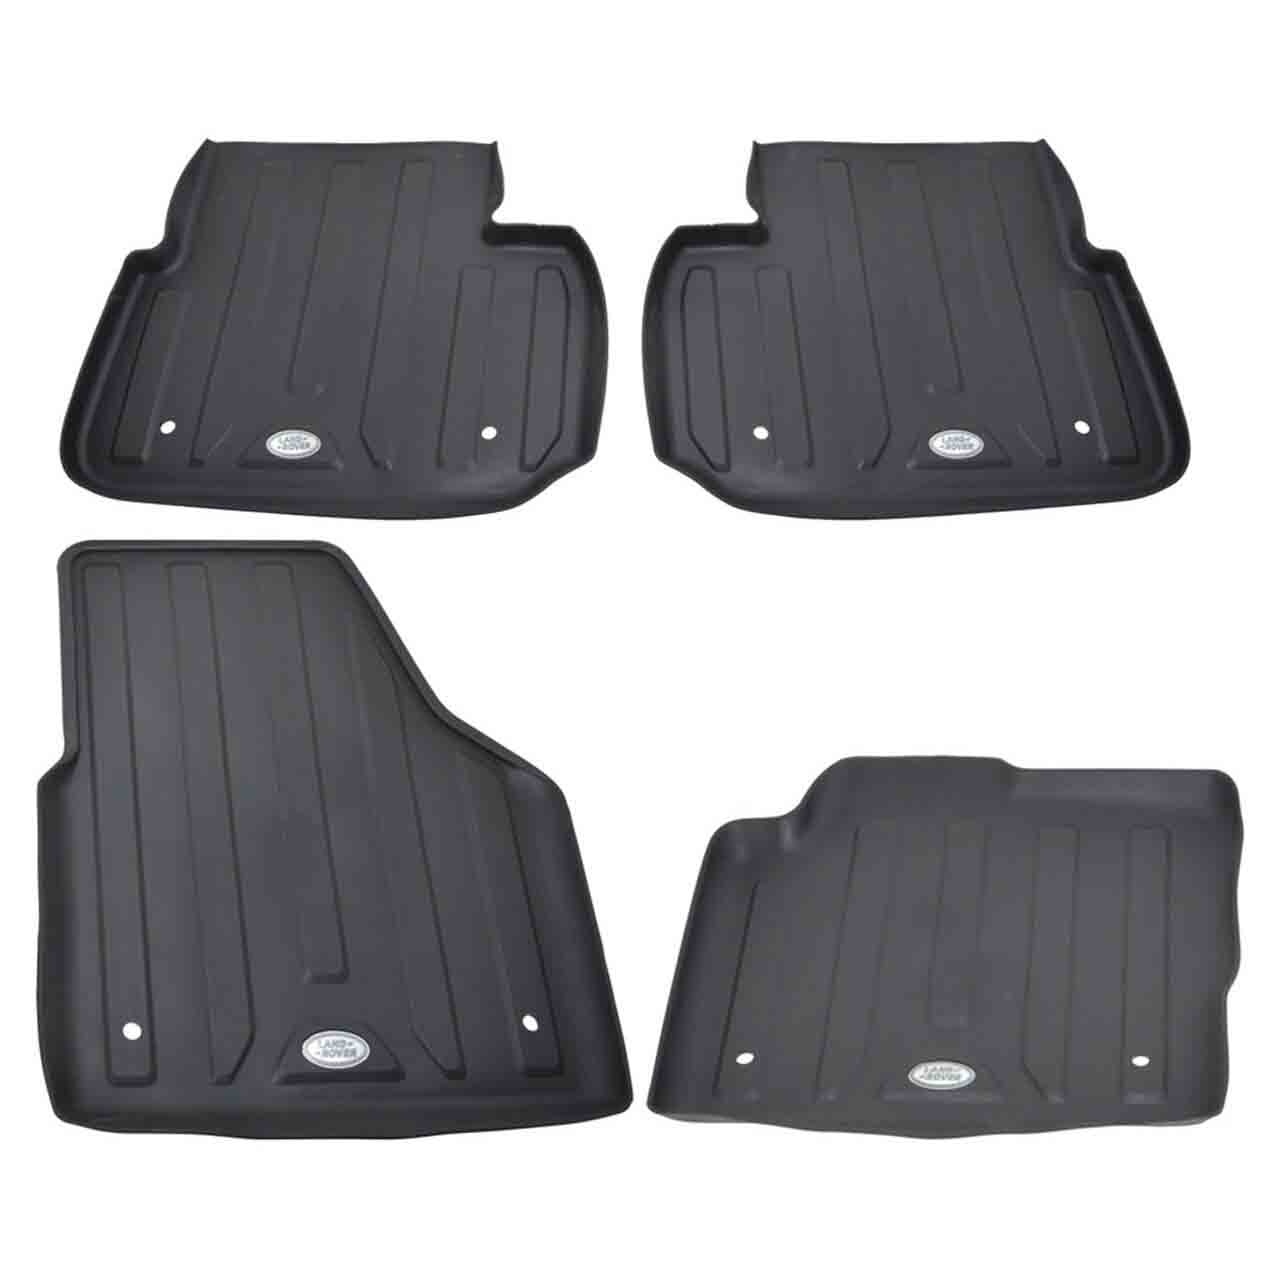 Discovery Sport Set Tappetini Gomma Guida A Sinistra GR2-05703